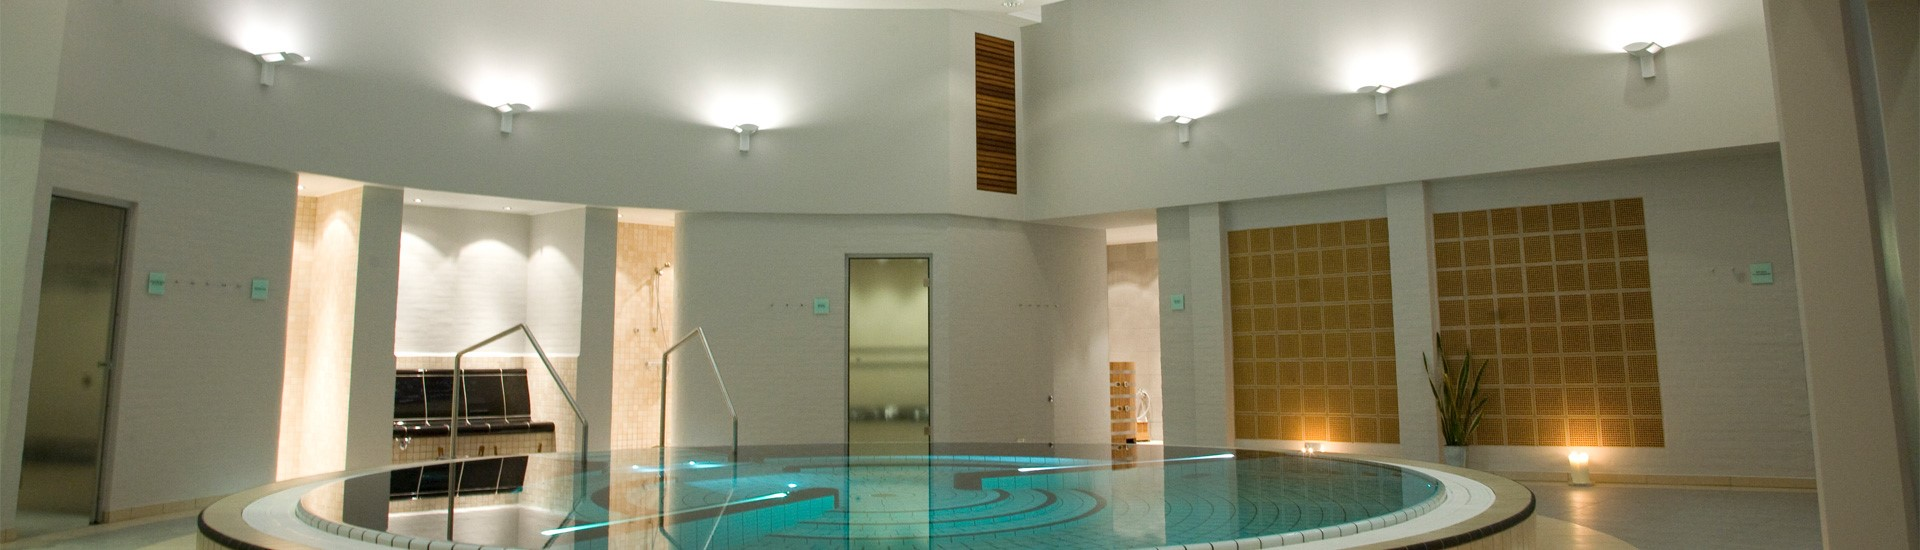 hotel-thinggaard-wellness-ophold-02.jpg